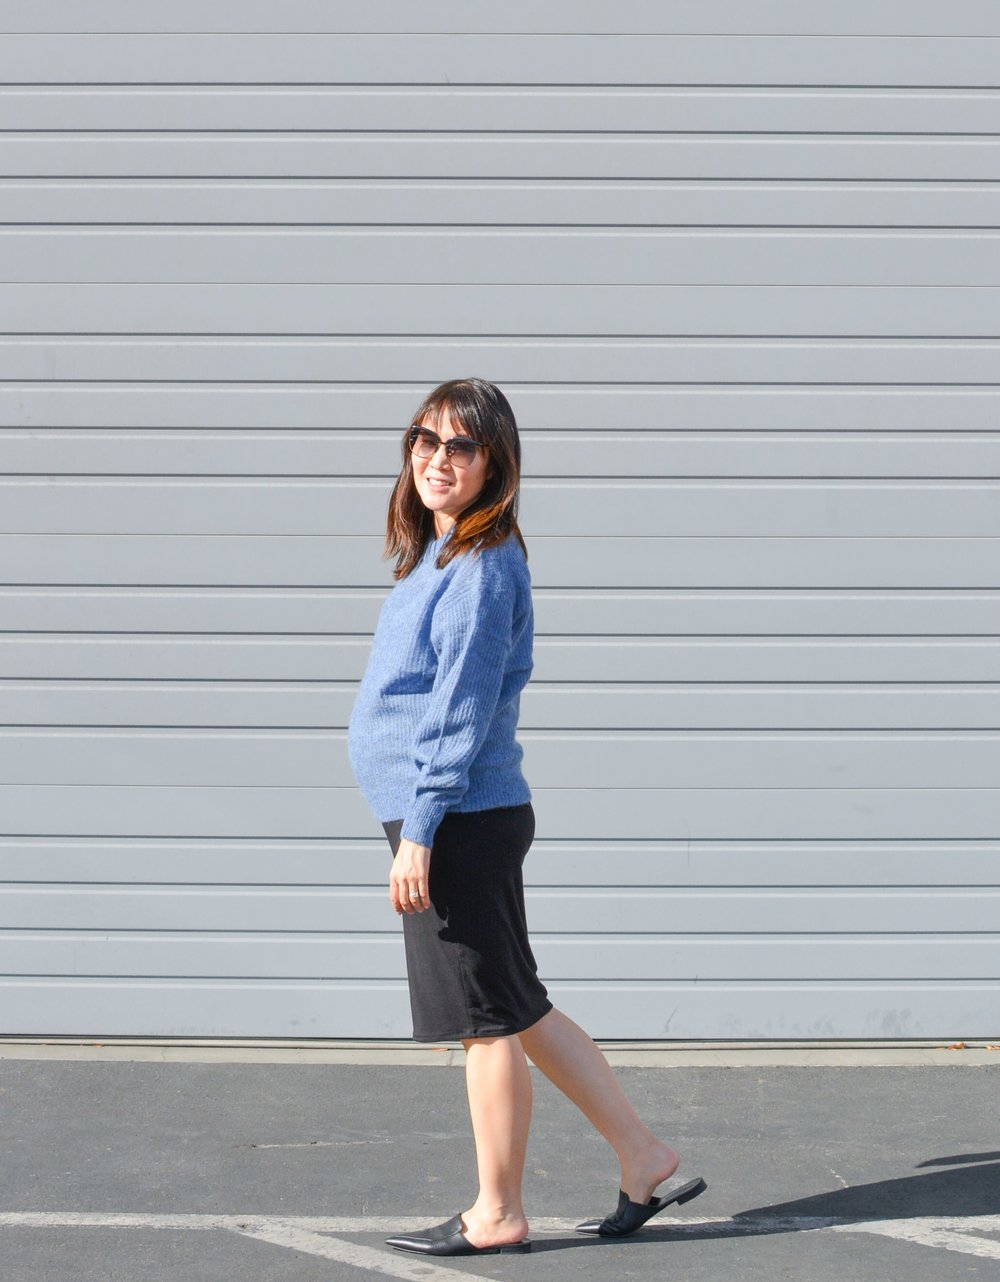 Everlane Review Oversized Alpaca Crew (2 of 3)-min.jpg